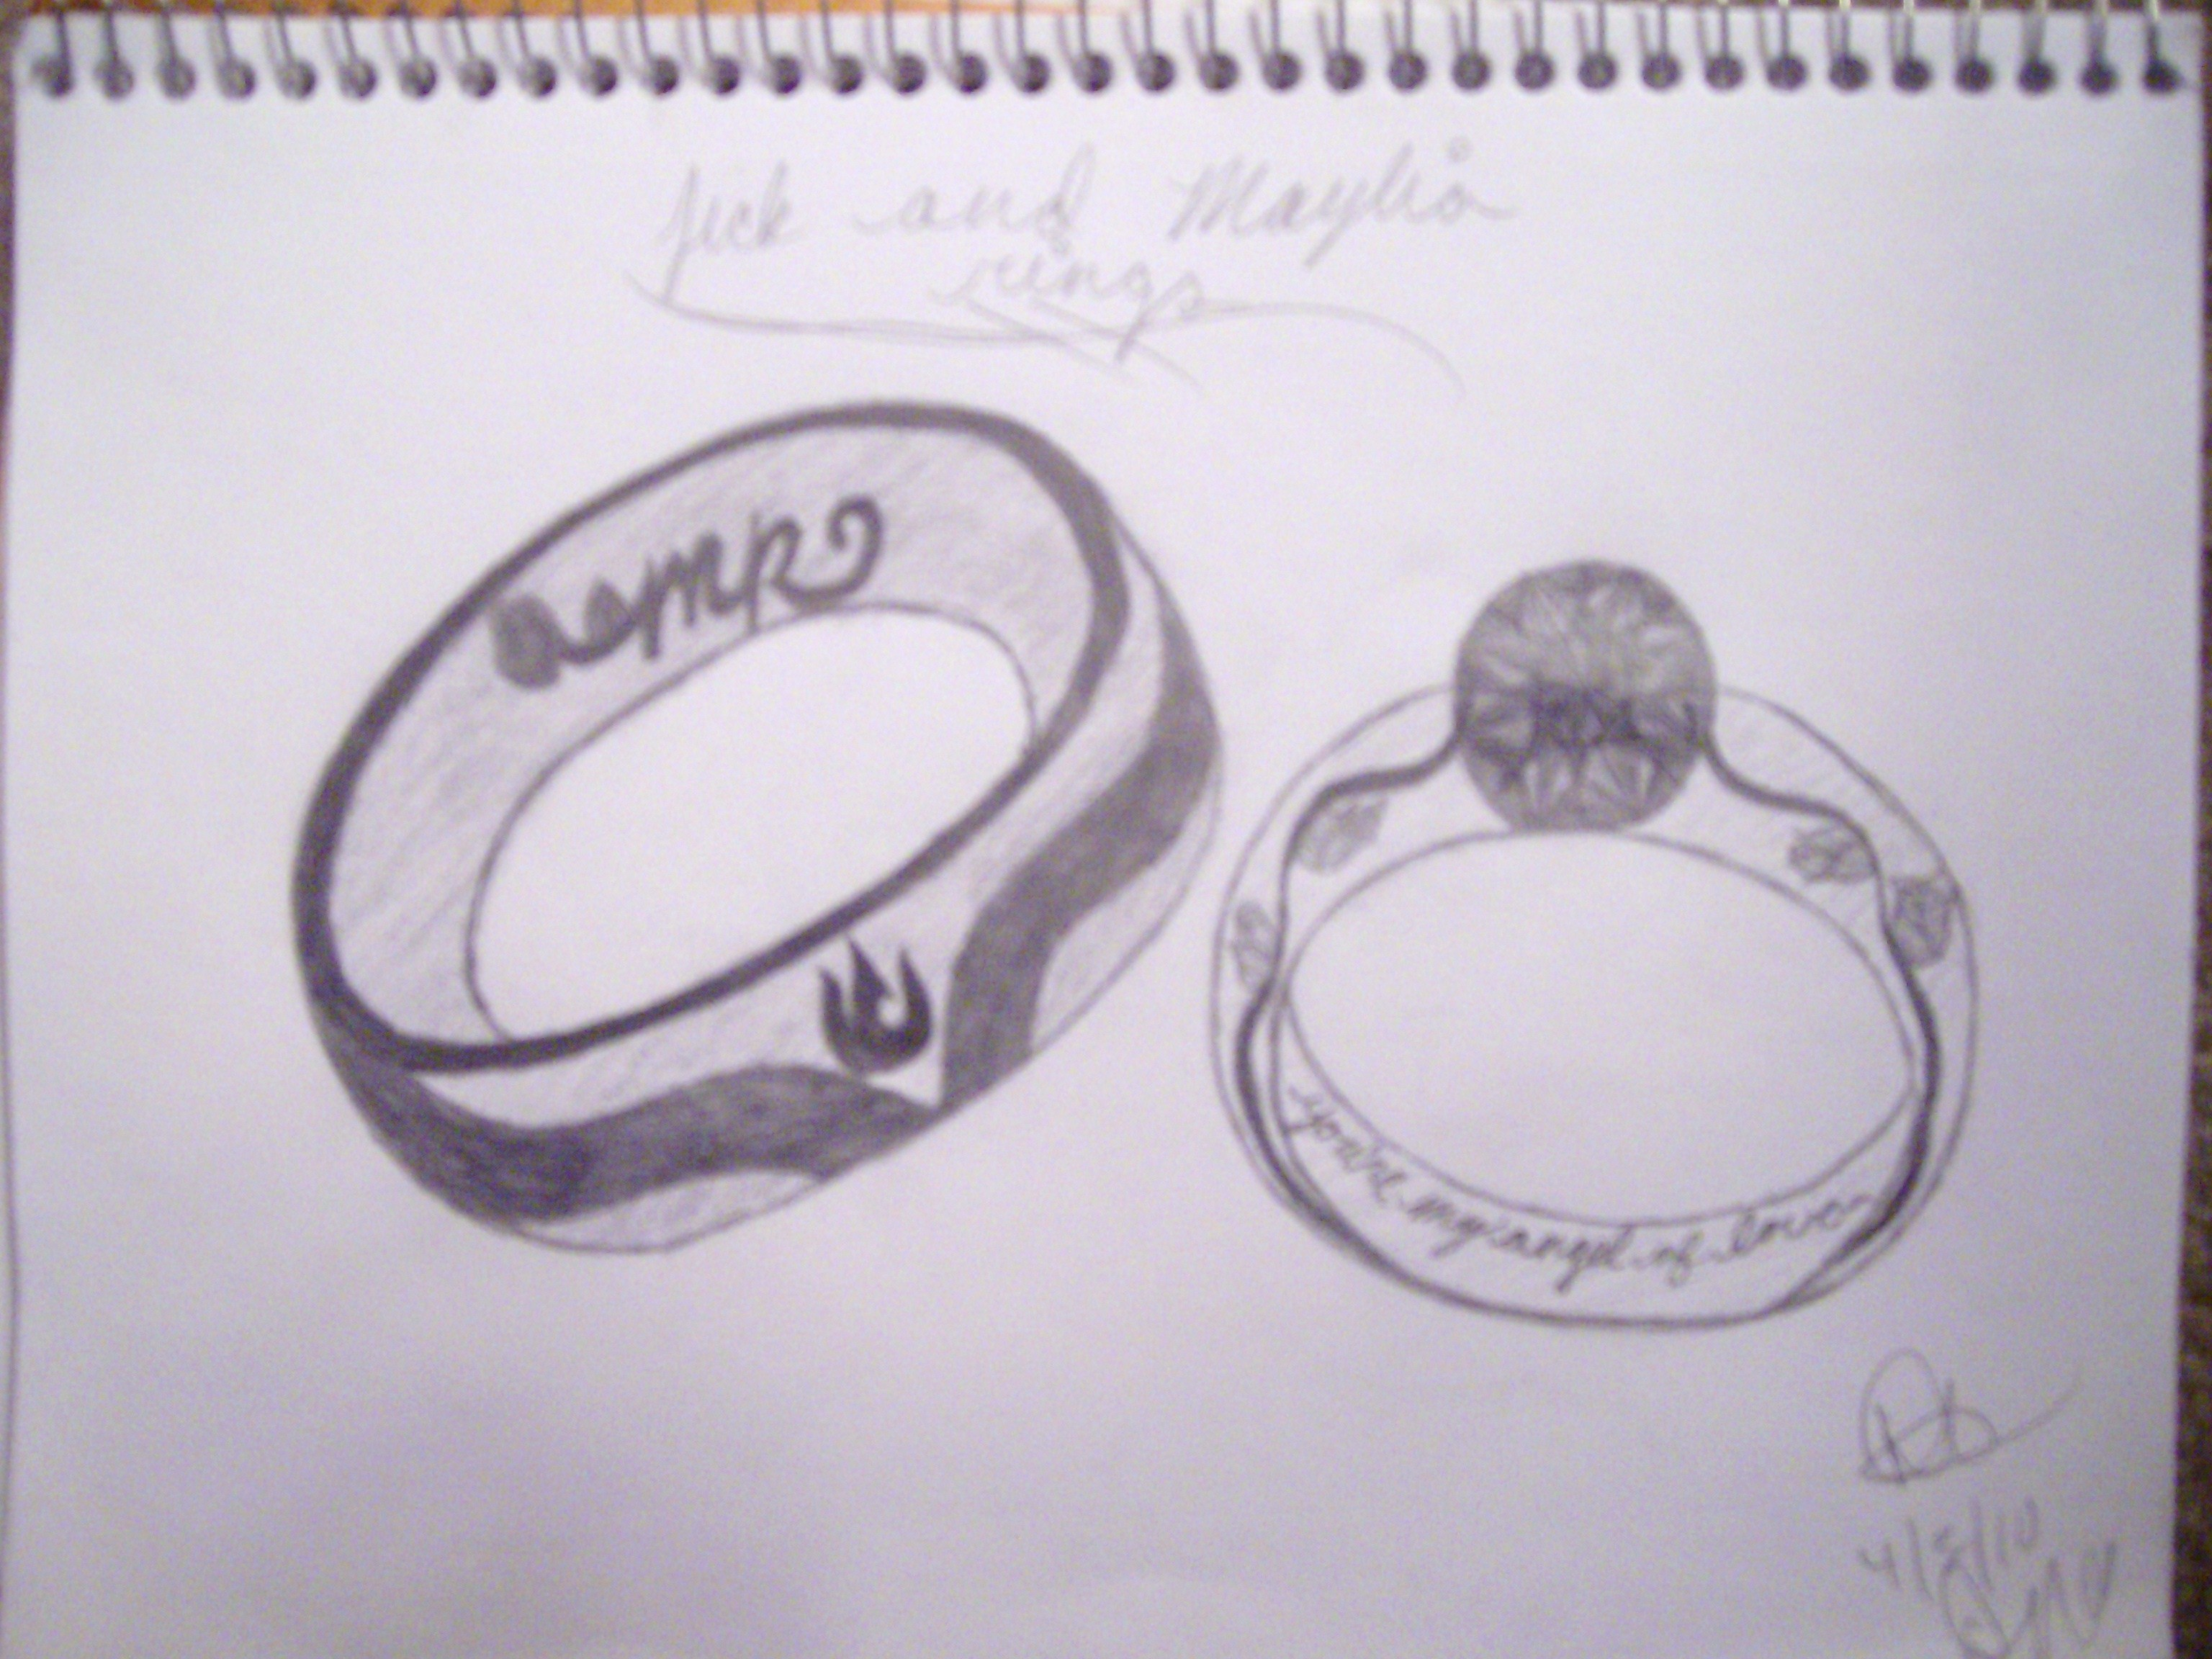 Jick and Maylias Wedding Rings by vaderlicious